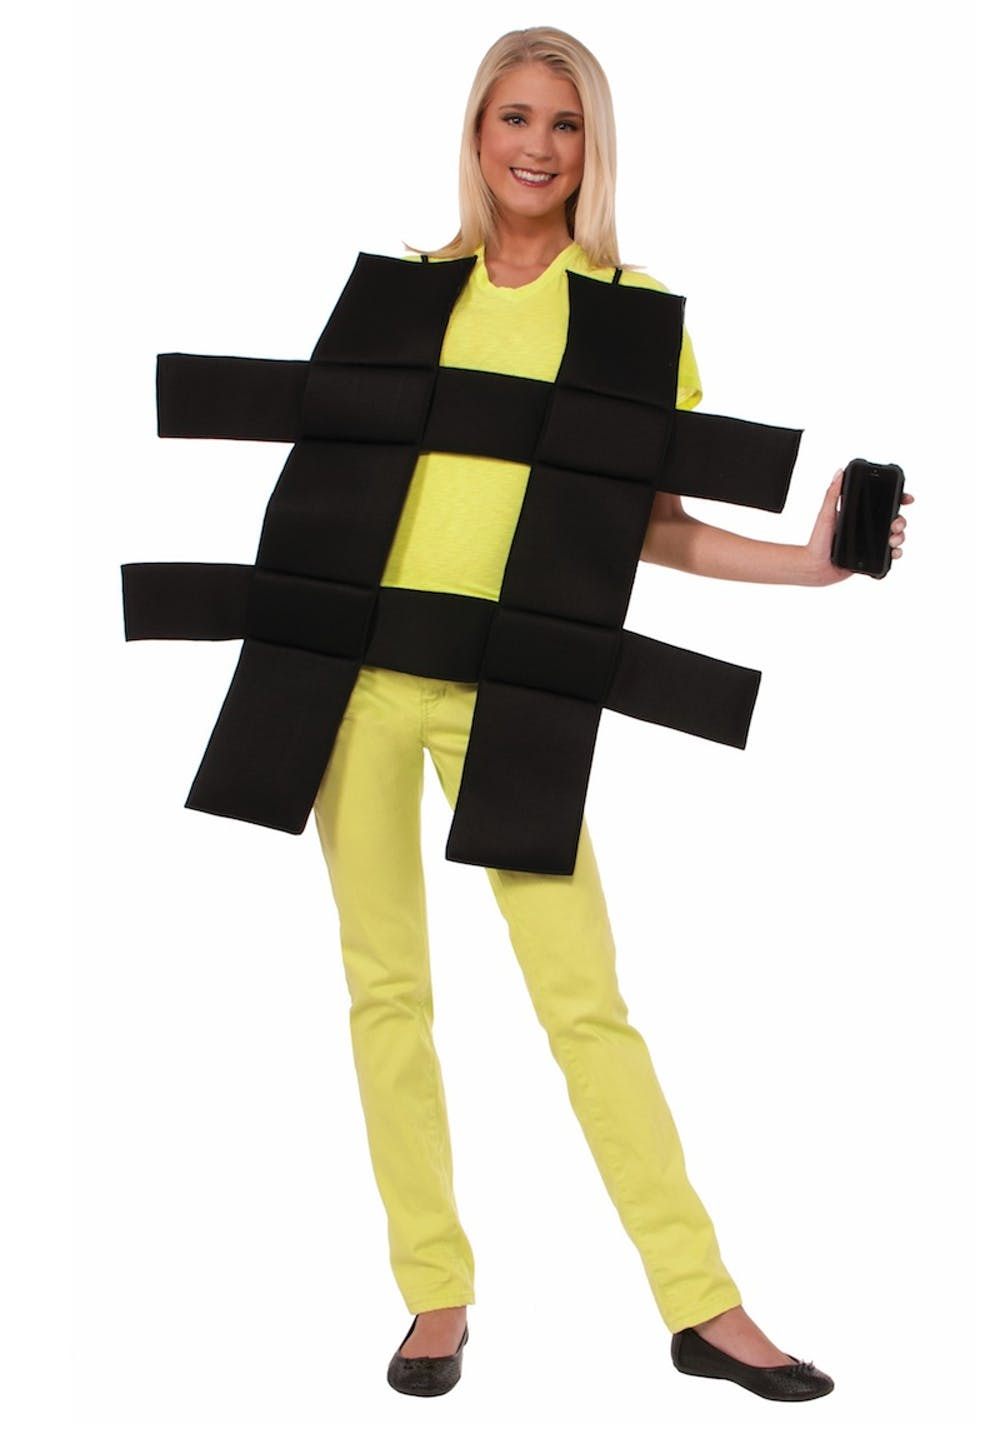 the 21 best meme halloween costume ideas that will #breaktheinternet